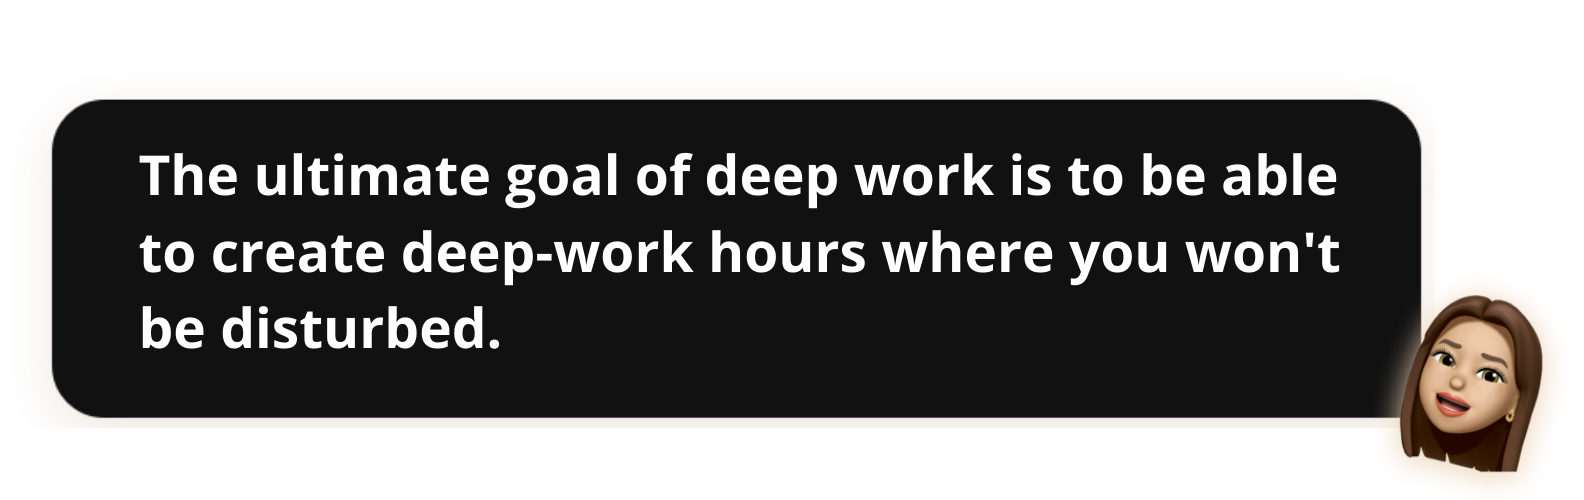 The ultimate goal of deep work is to be able to create deep-work hours where you won't be disturbed. - Popwork